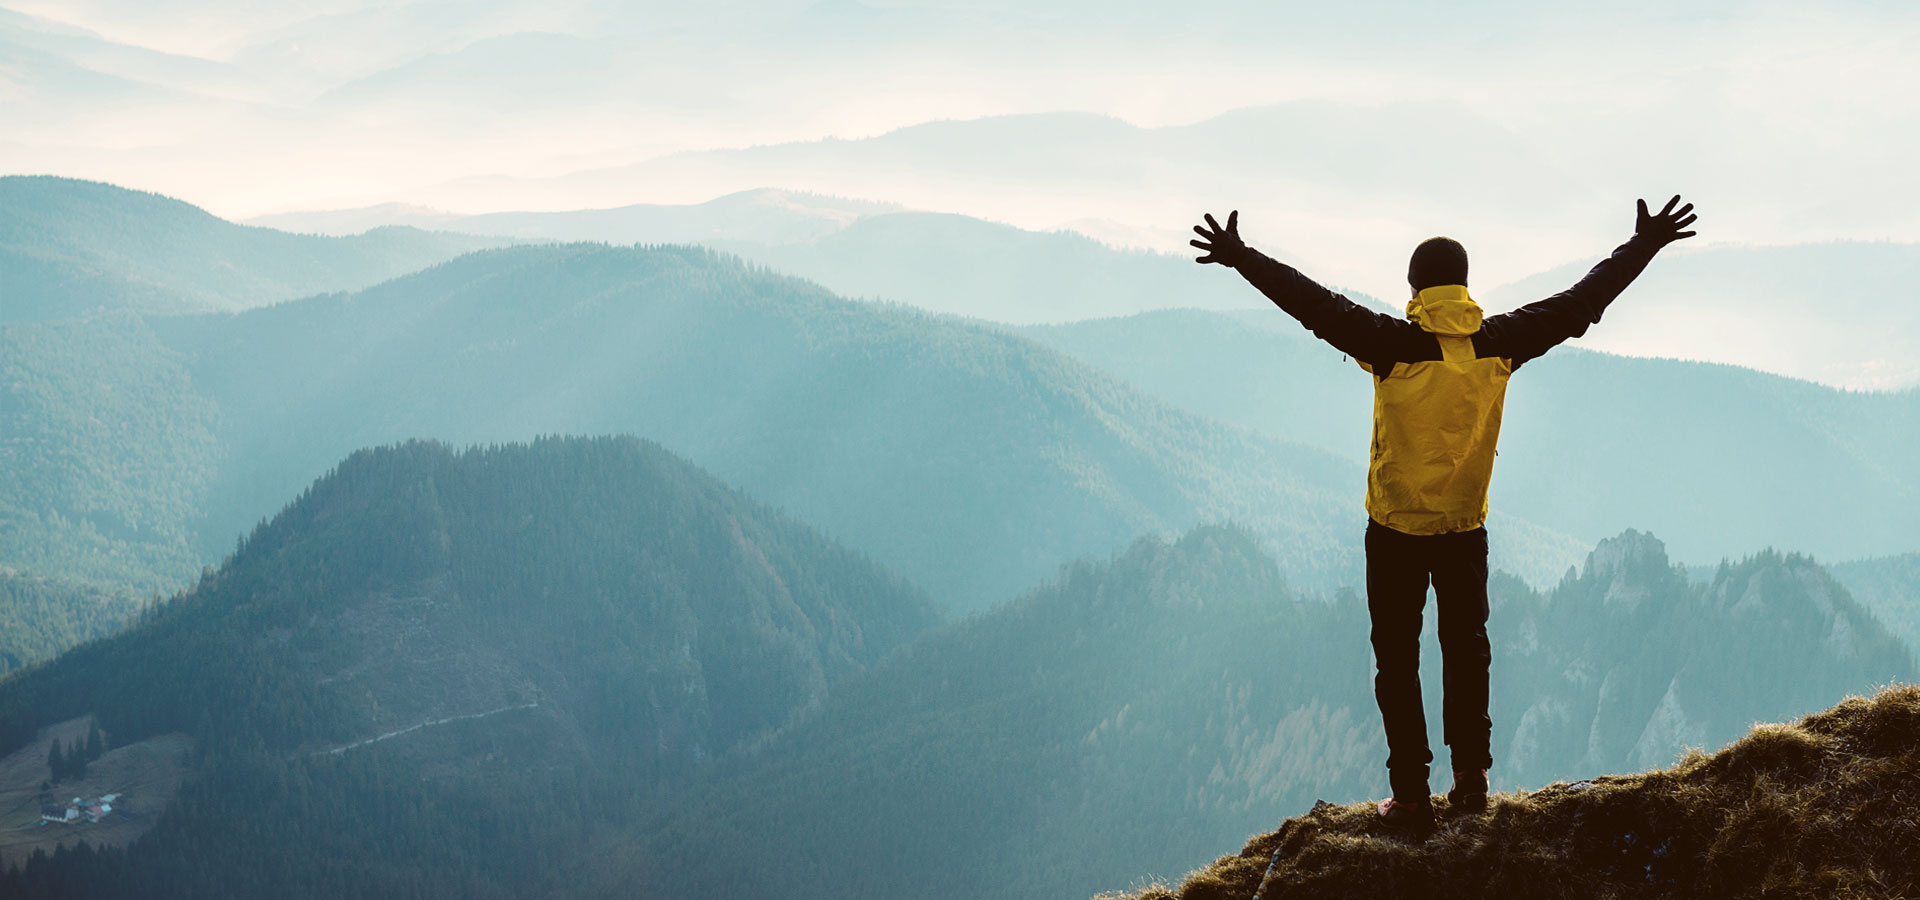 Man with hands in the air on a mountain